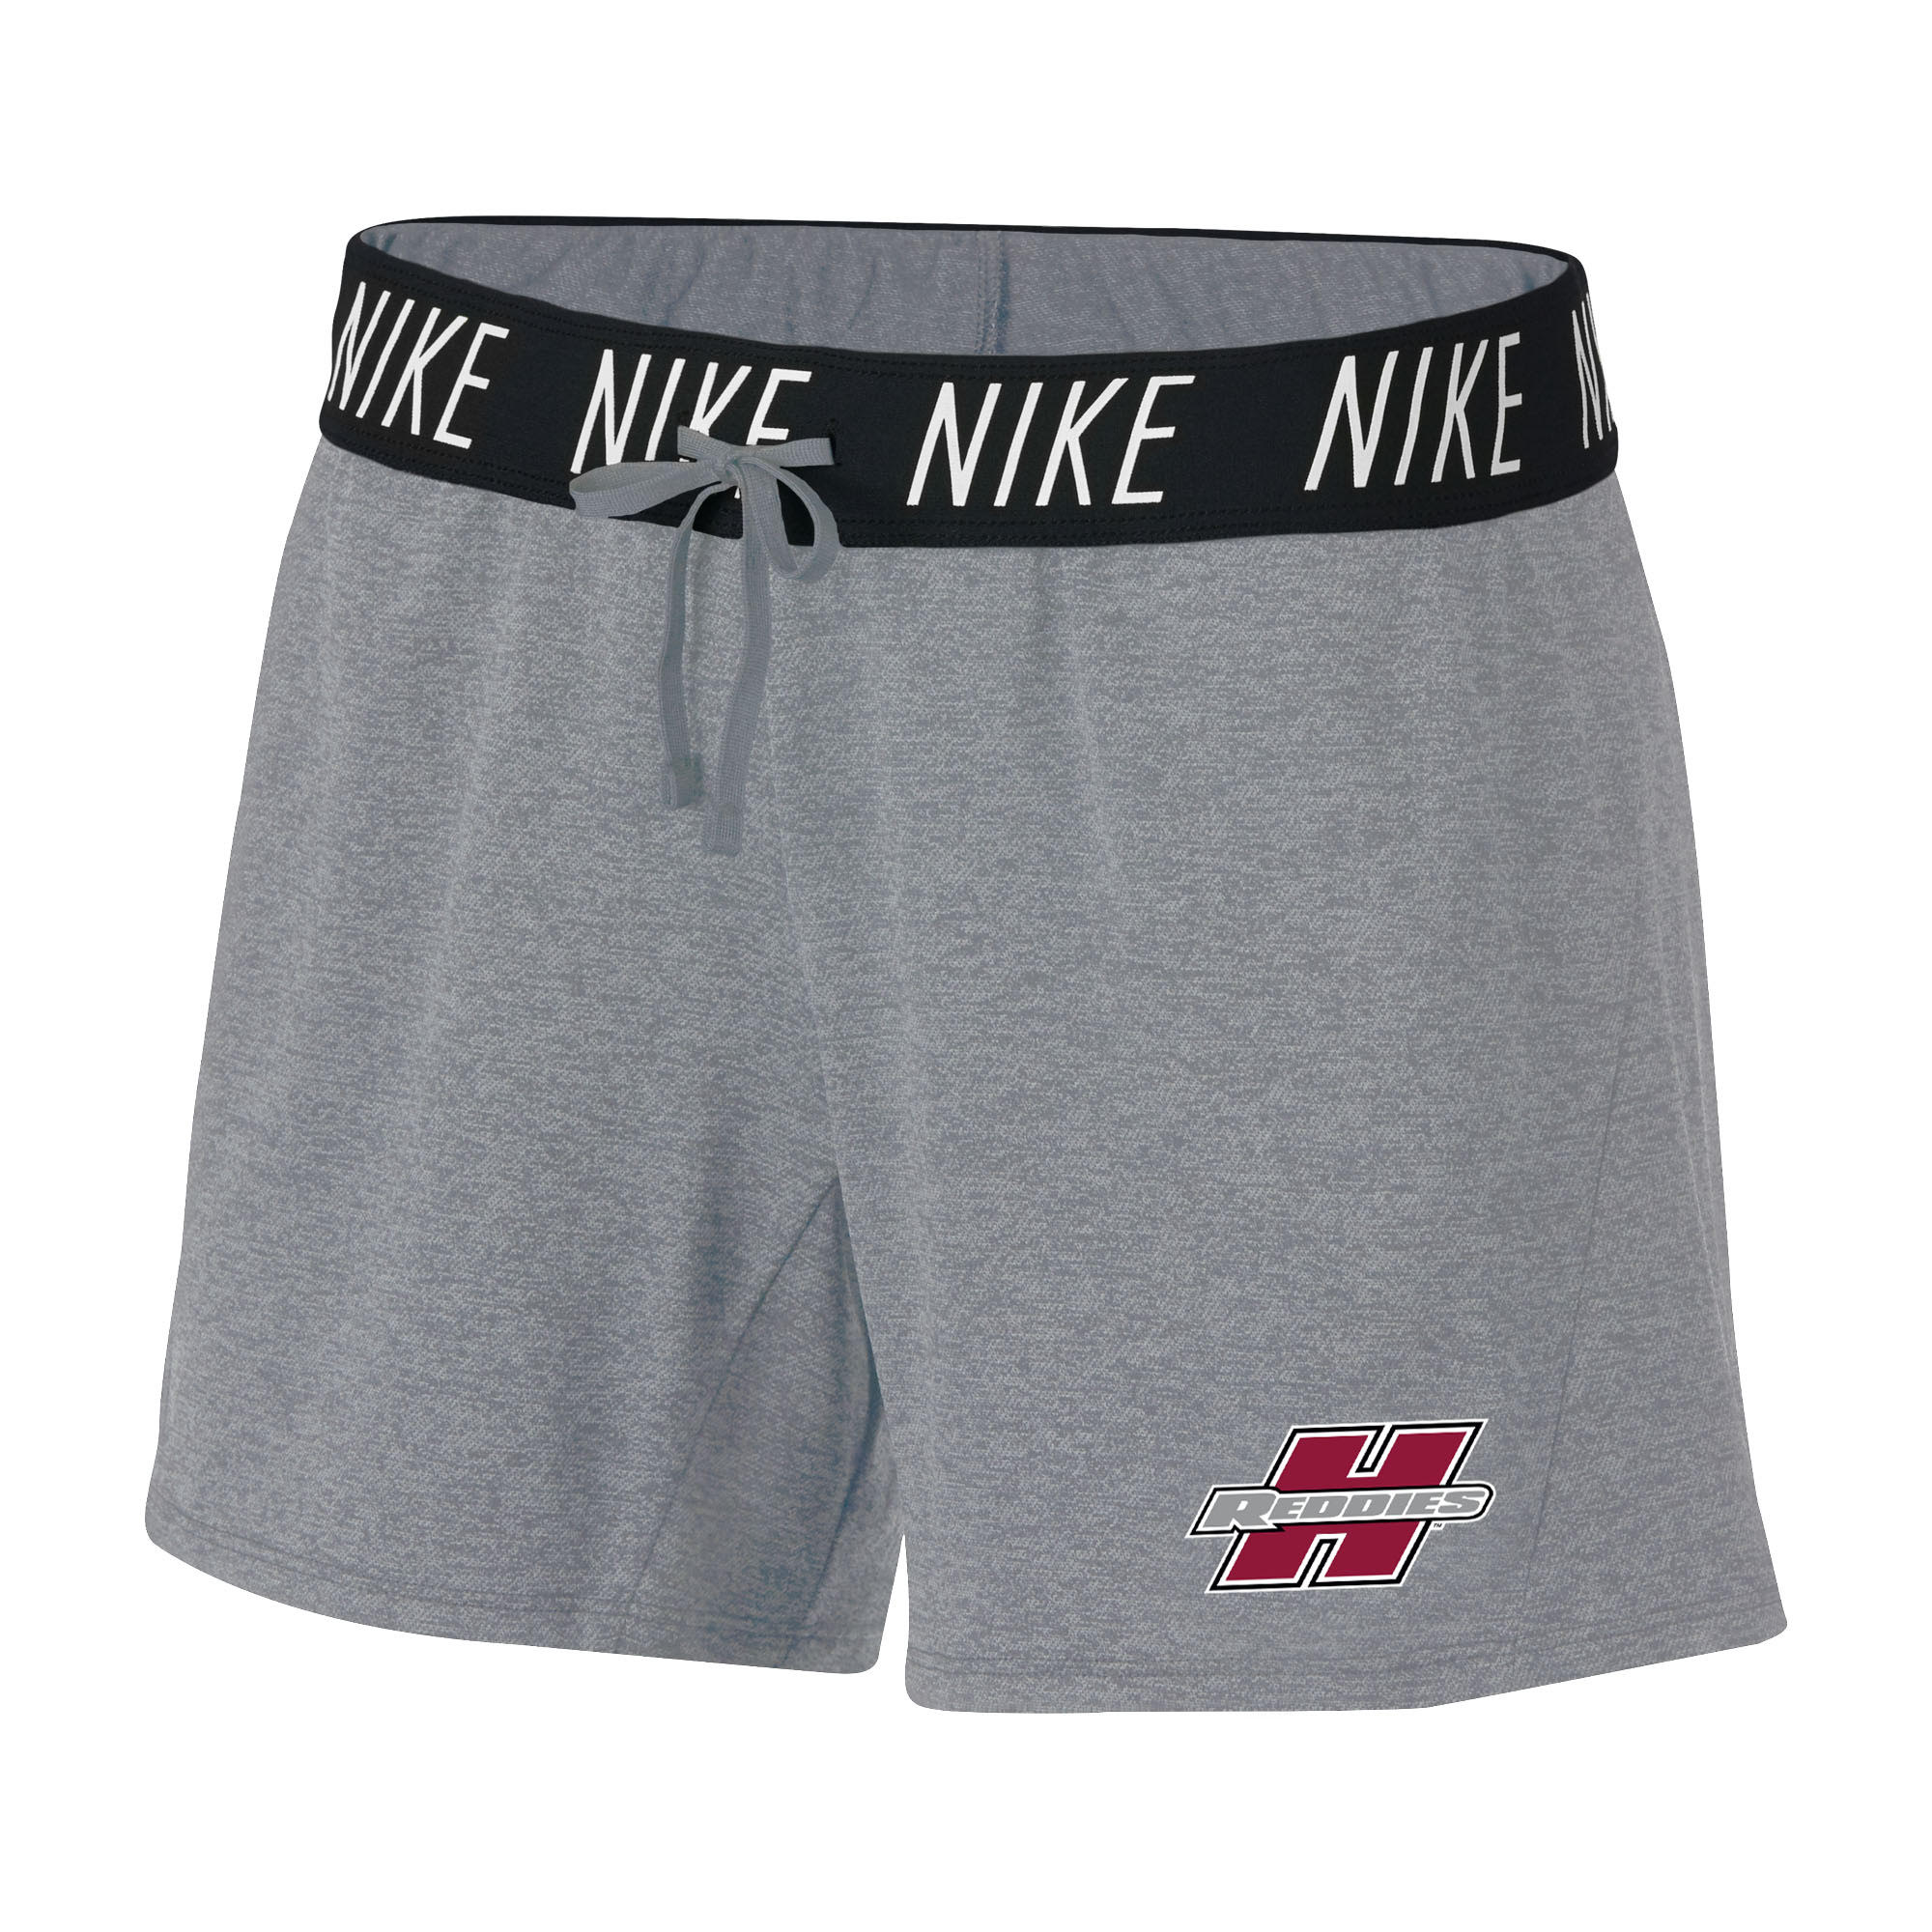 Henderson Reddies Attack Shorts